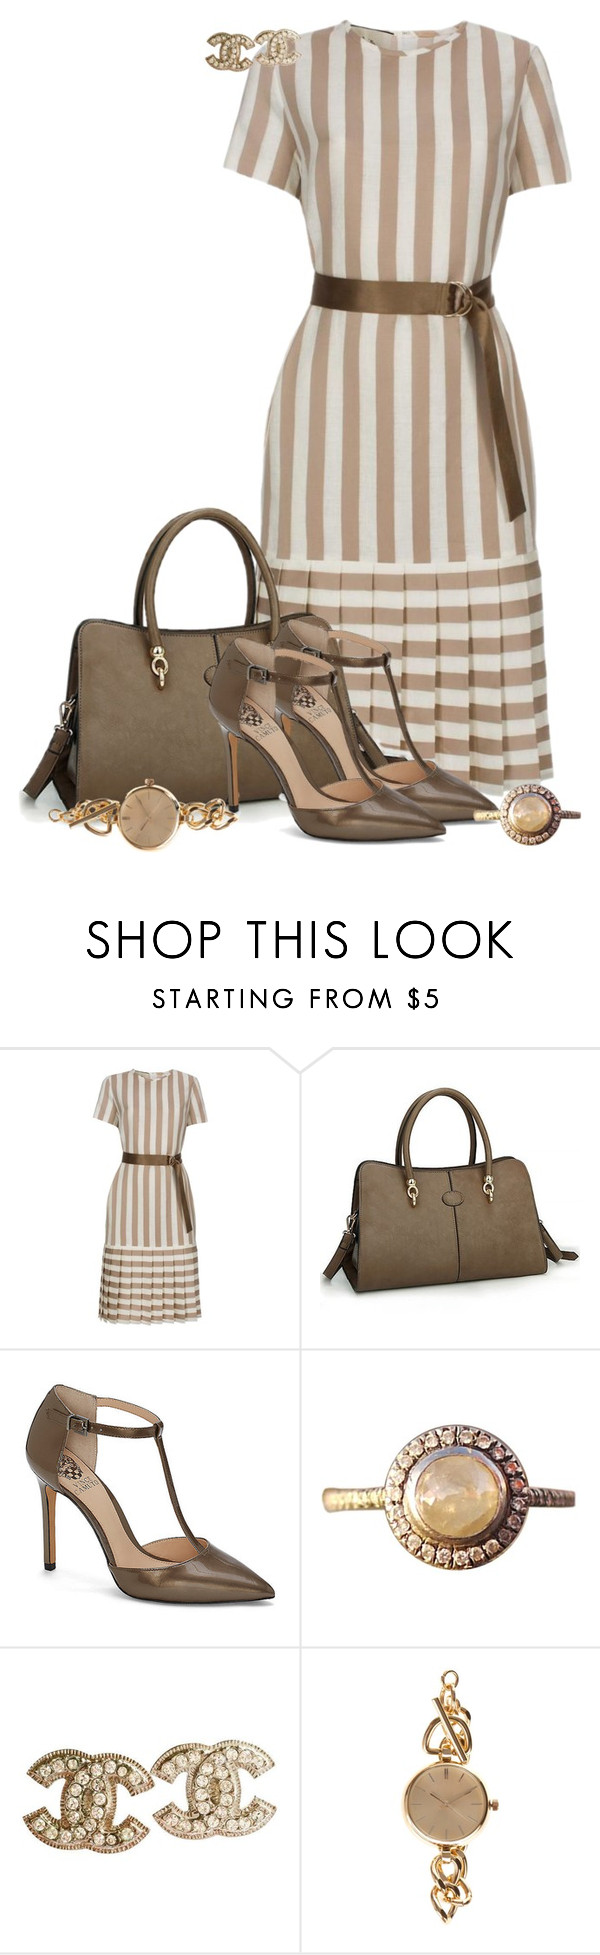 """""""Zahara"""" by rotwein ❤ liked on Polyvore featuring Paul Smith, Vince Camuto, Barneys New York, Chanel and ZALORA"""